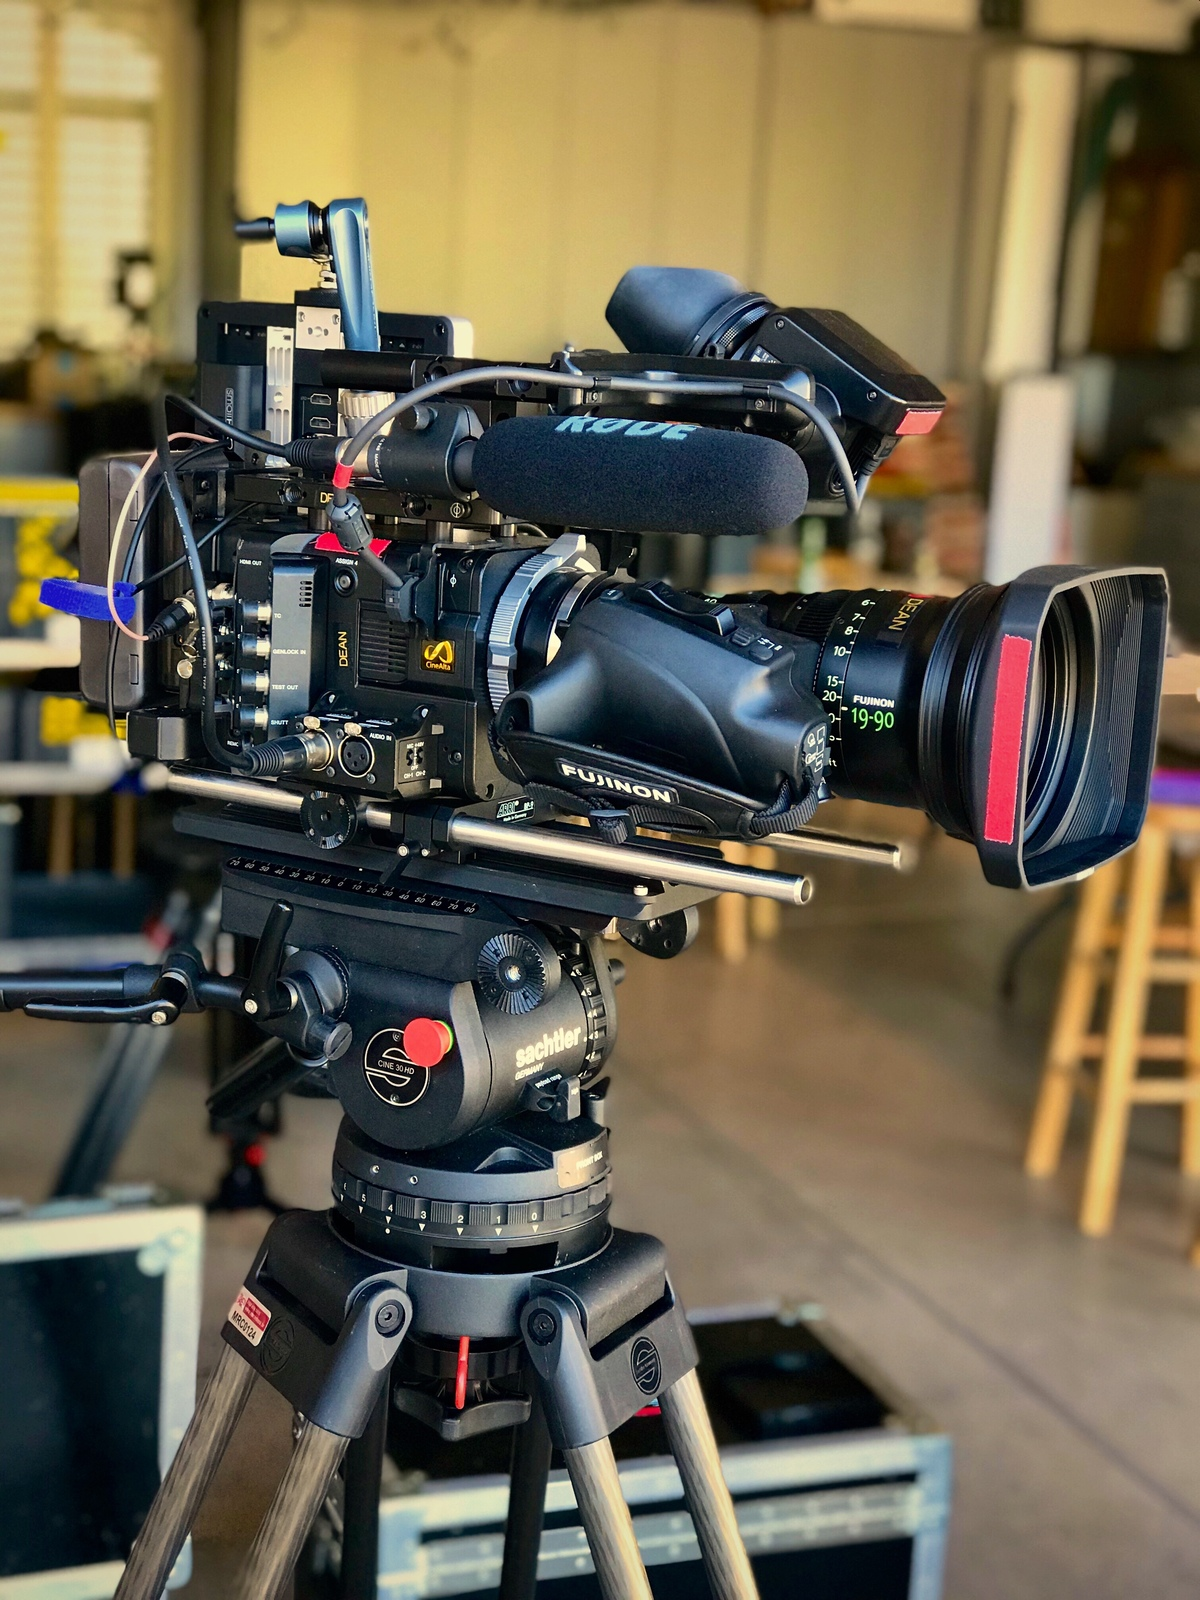 Rent a Sony PMW-F55 CineAlta 4K Digital Cinema Camera, Best Prices |  ShareGrid Las Vegas